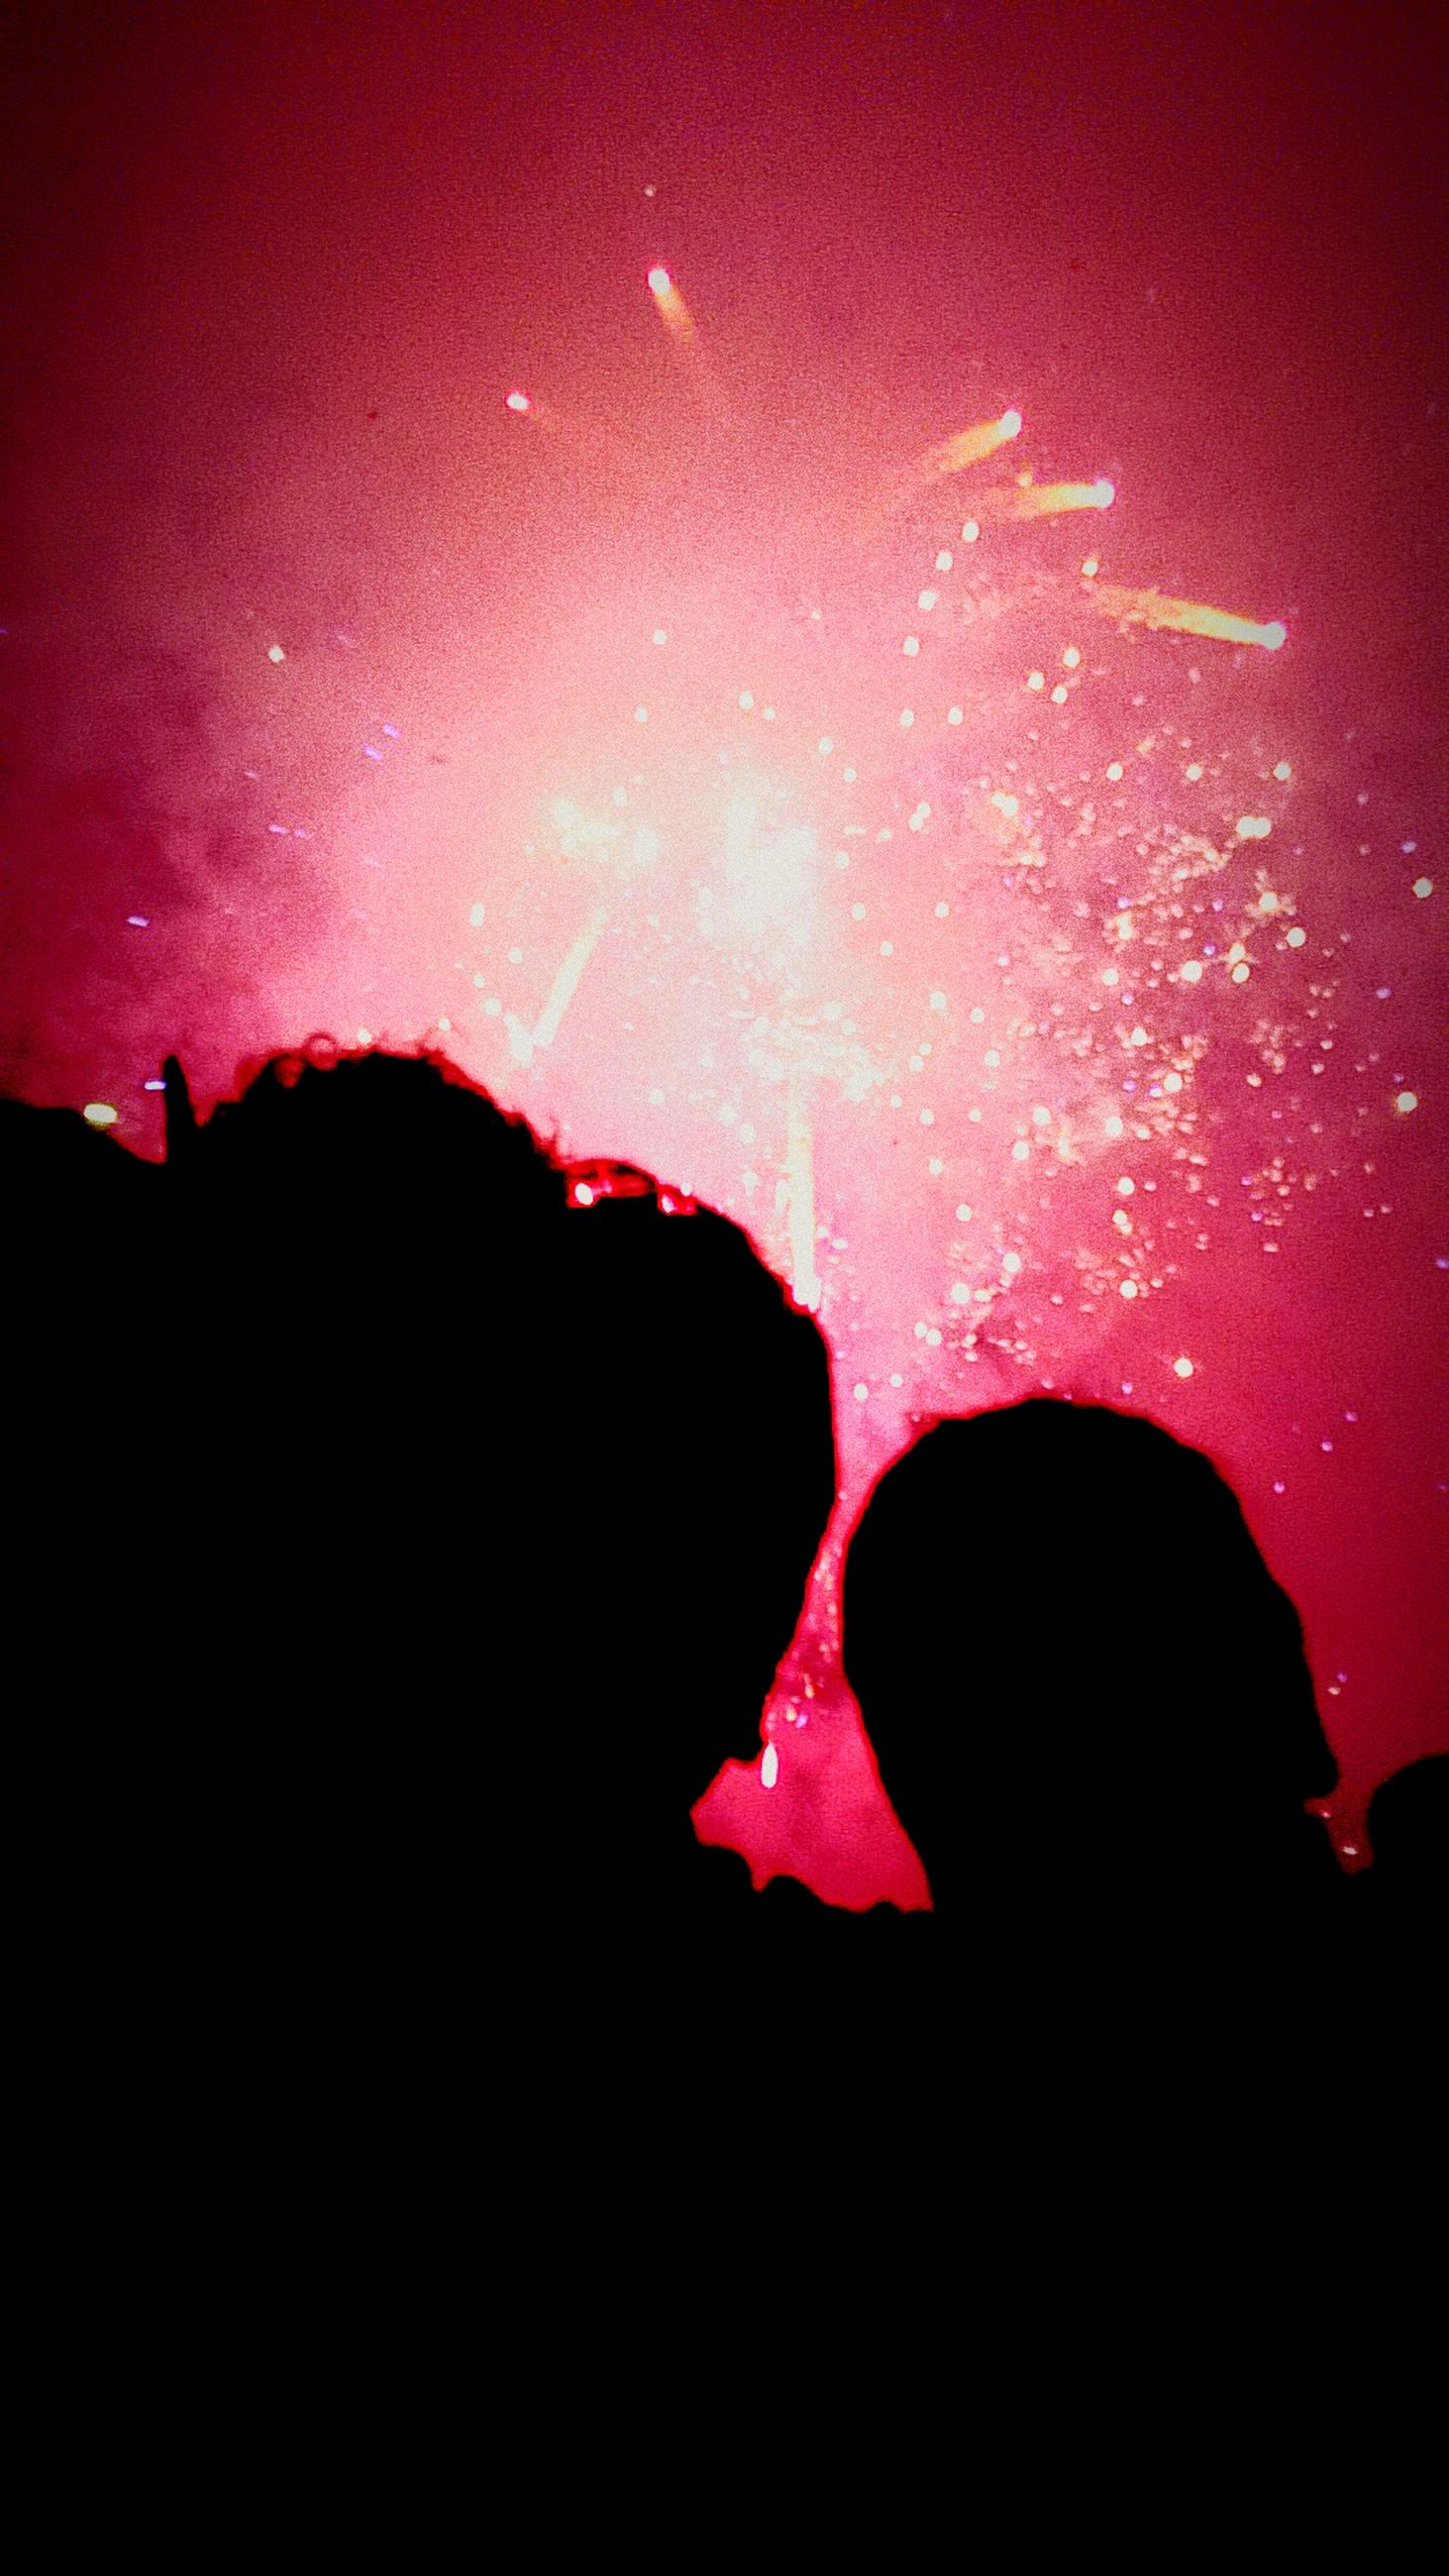 night, silhouette, illuminated, red, sky, dark, celebration, pink color, arts culture and entertainment, event, unrecognizable person, indoors, lifestyles, firework display, leisure activity, glowing, light - natural phenomenon, purple